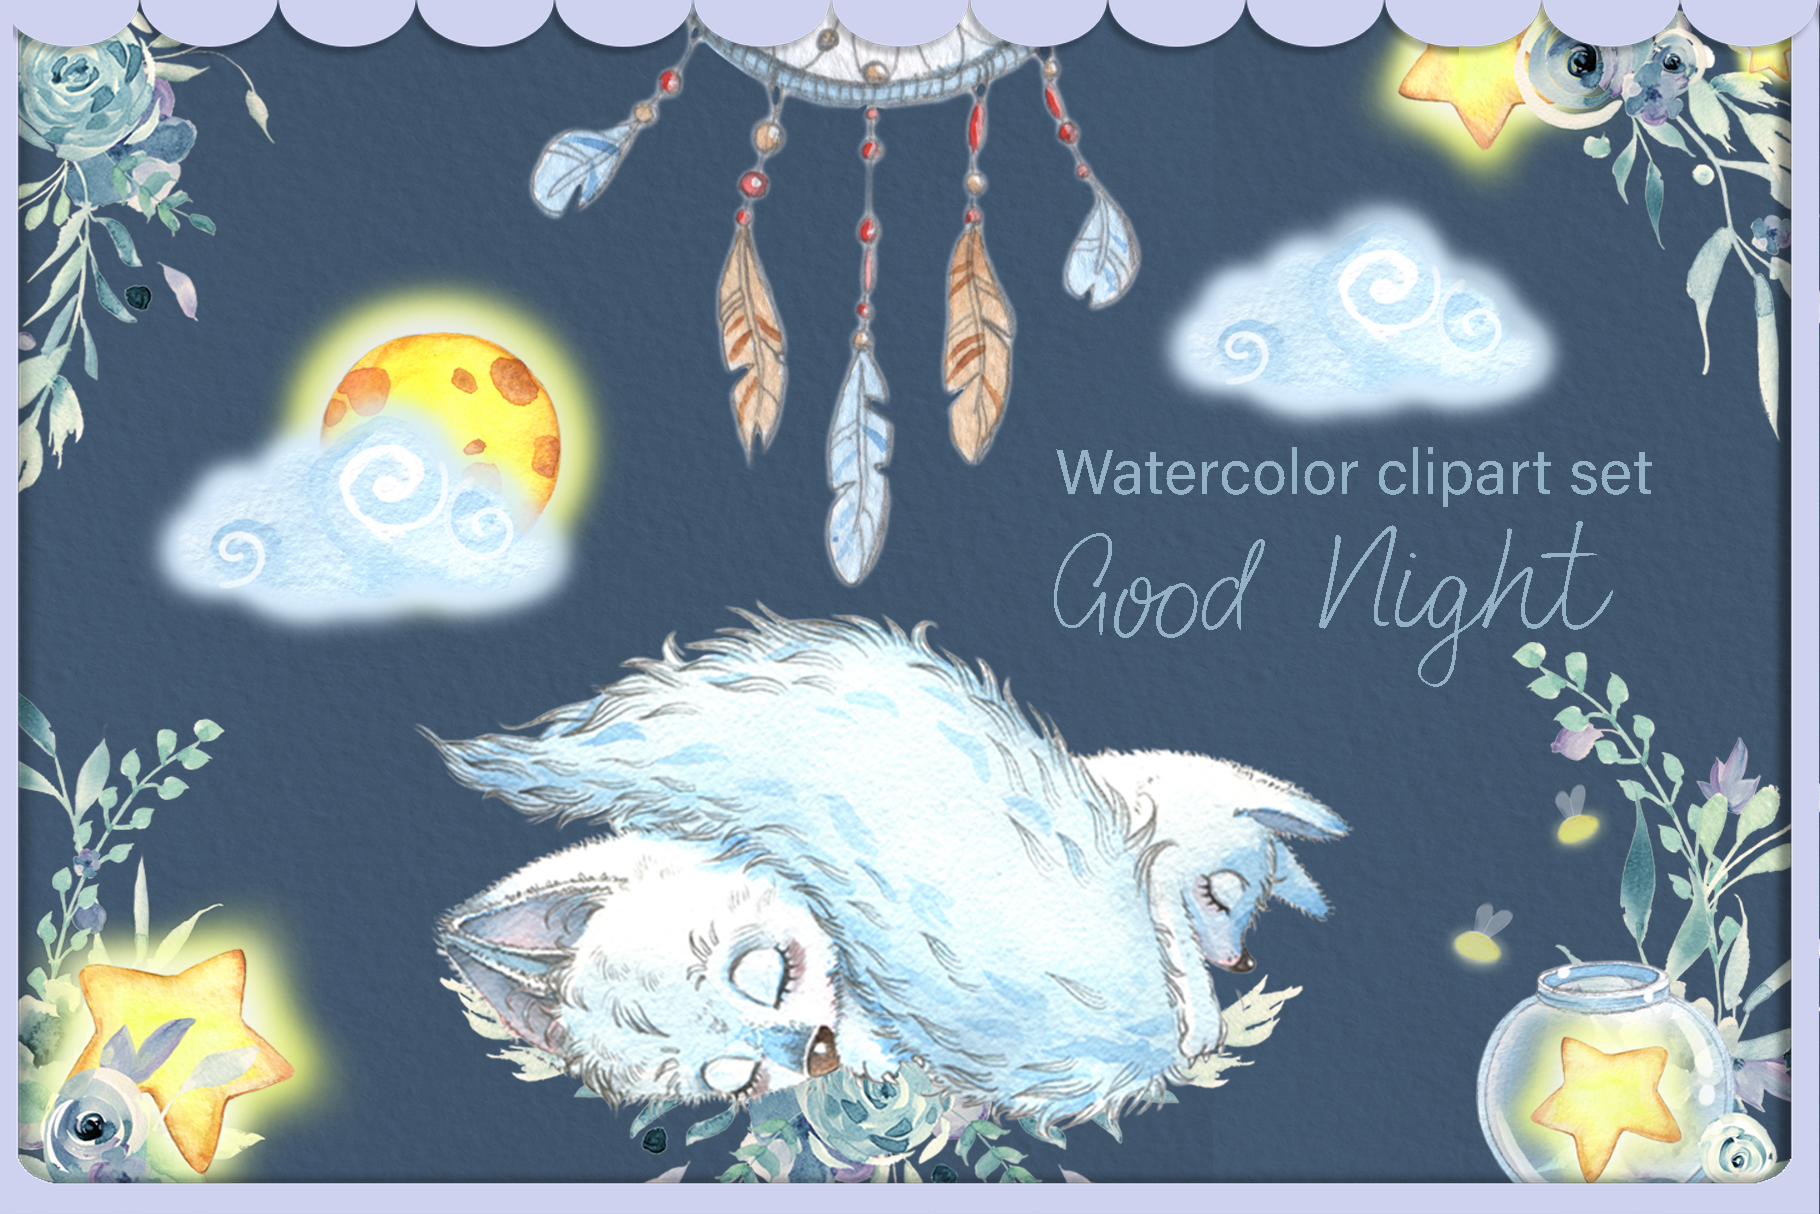 Arctic fox and glowwarm night watercolor clipart kit for bab example image 3